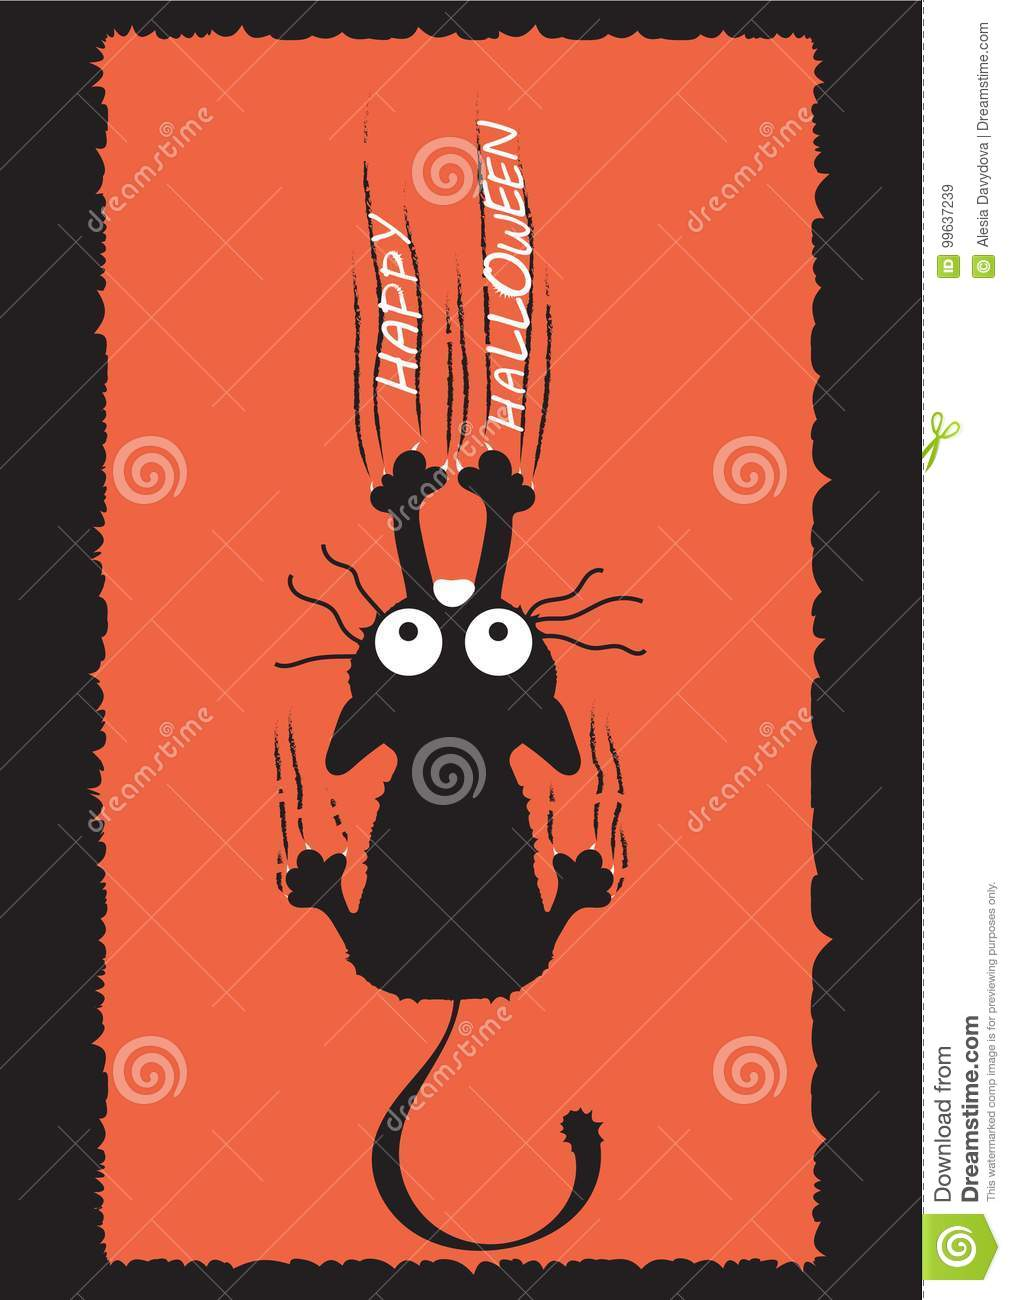 A black cat climbs the wall and leaves scratches. The idea for Halloween. Greeting card.